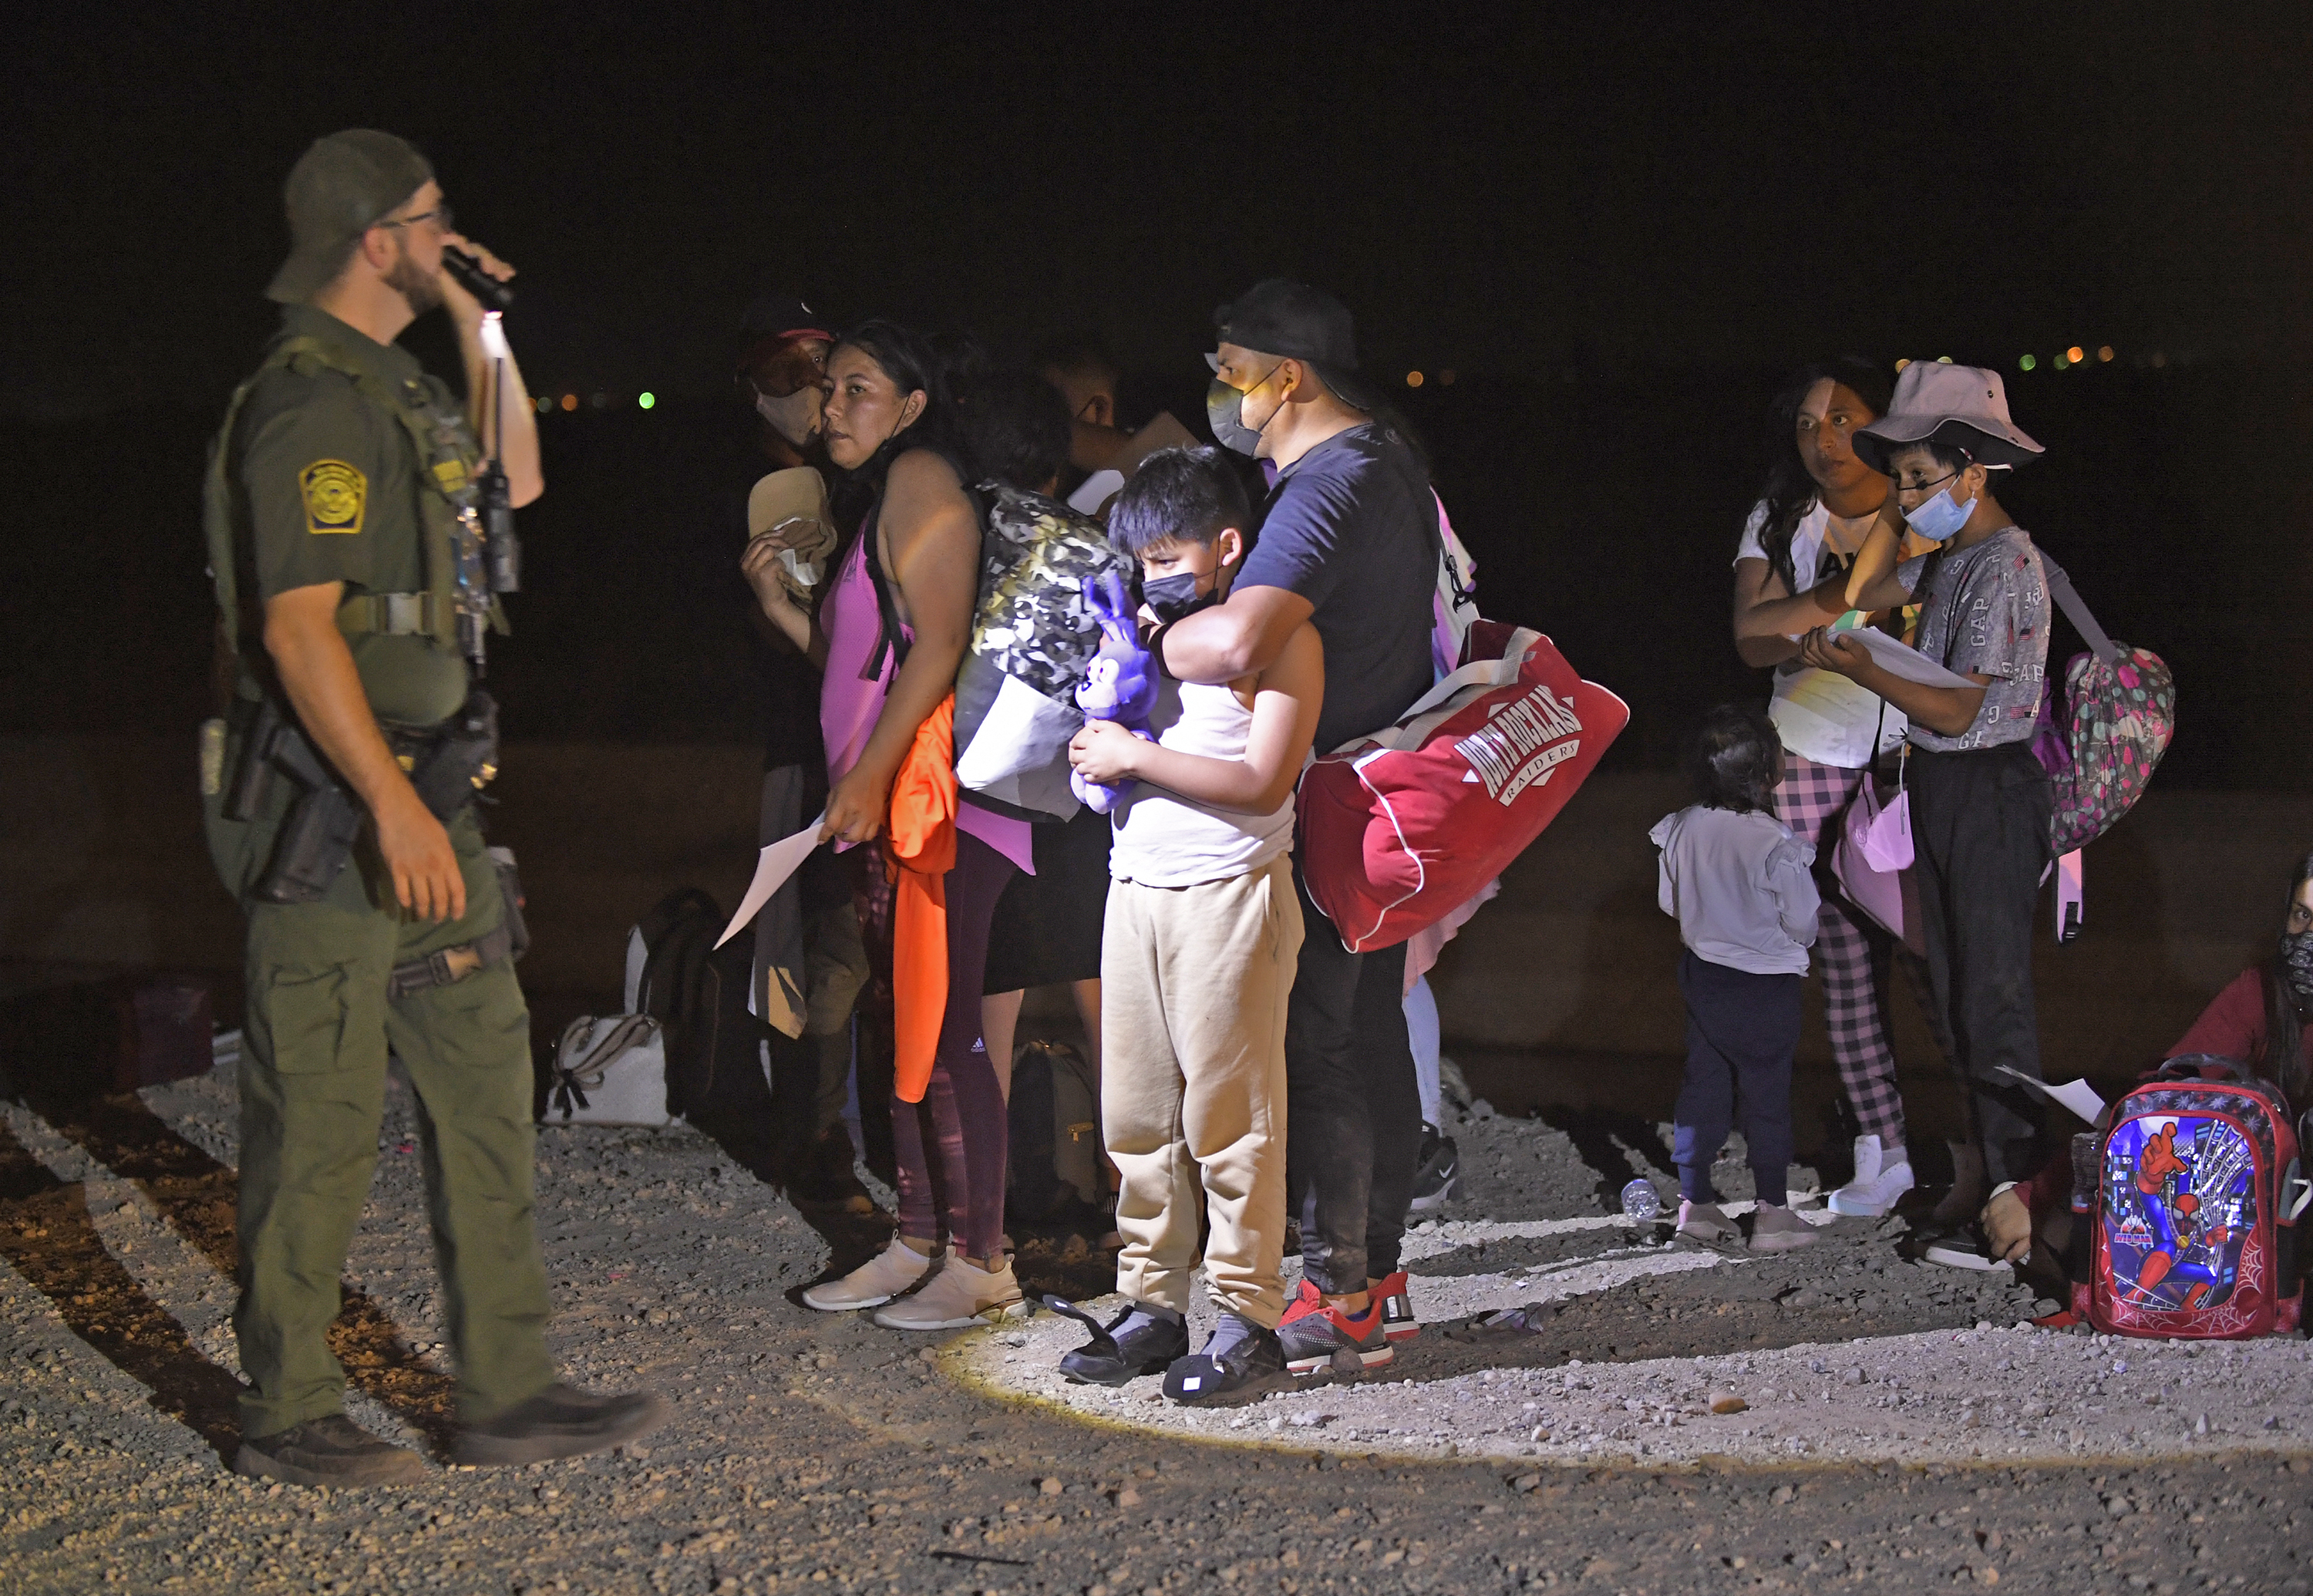 A border agent shines a flashlight on a group of migrants.